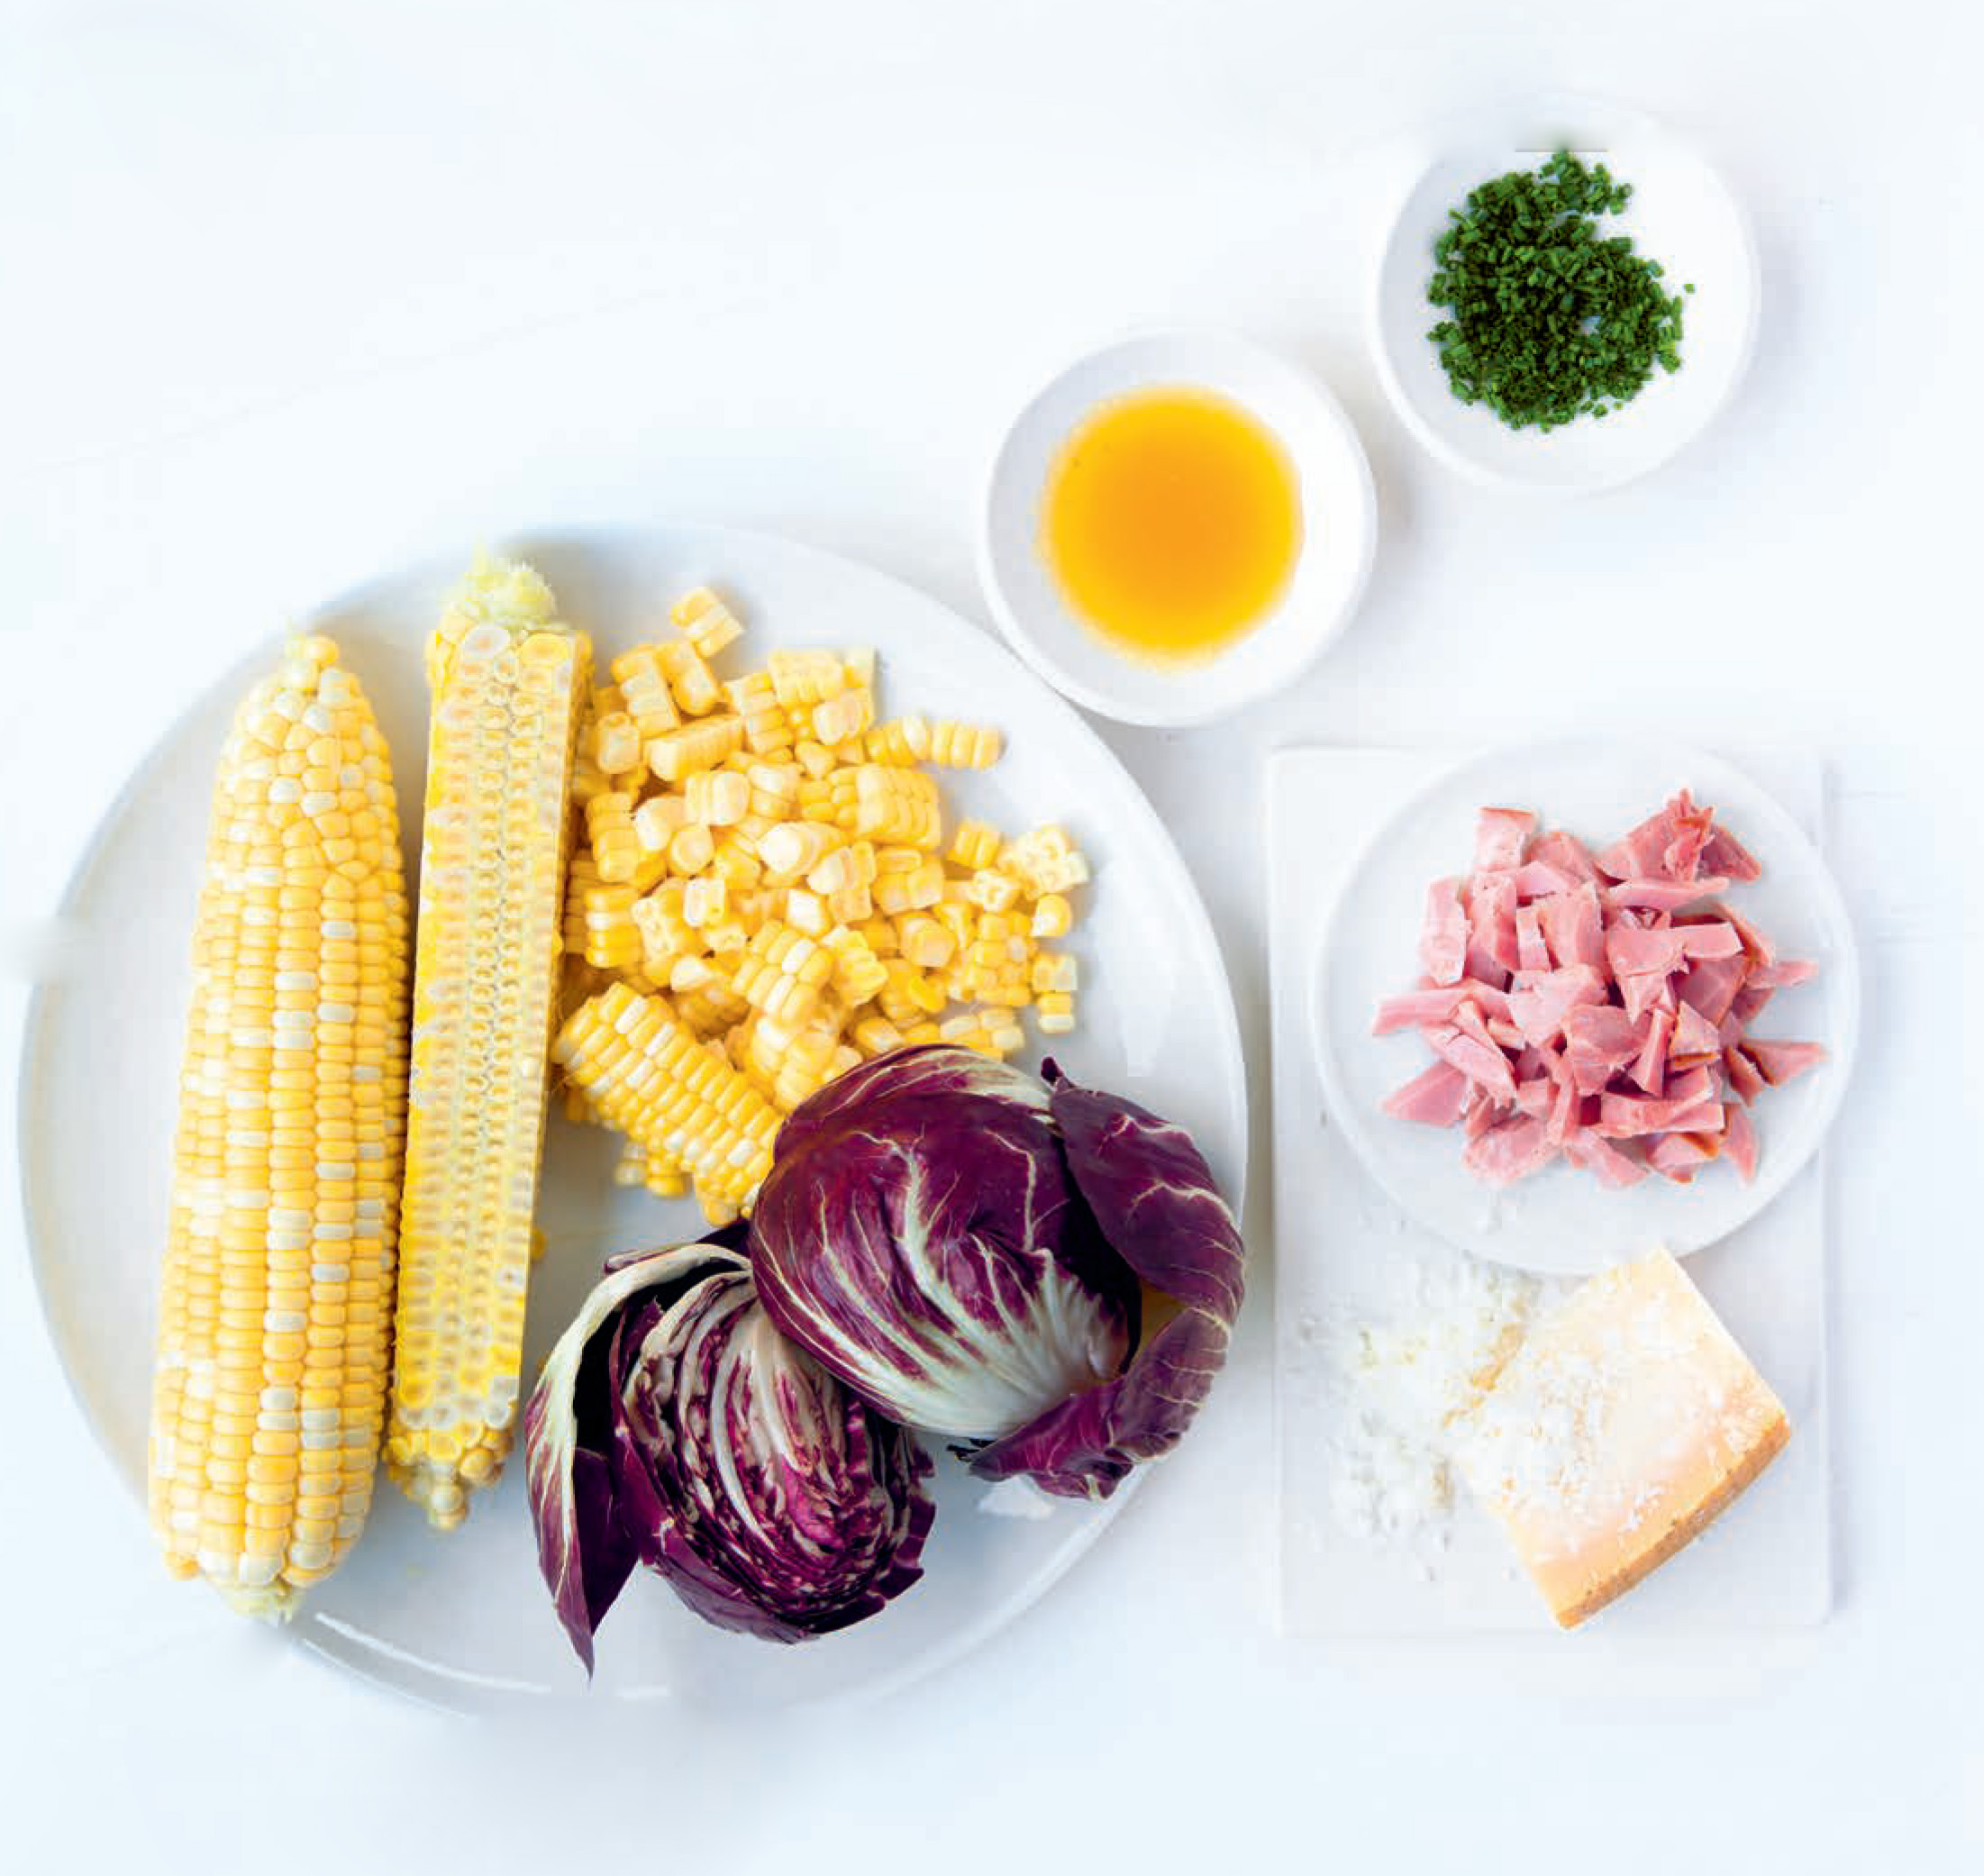 Sweetcorn & radicchio